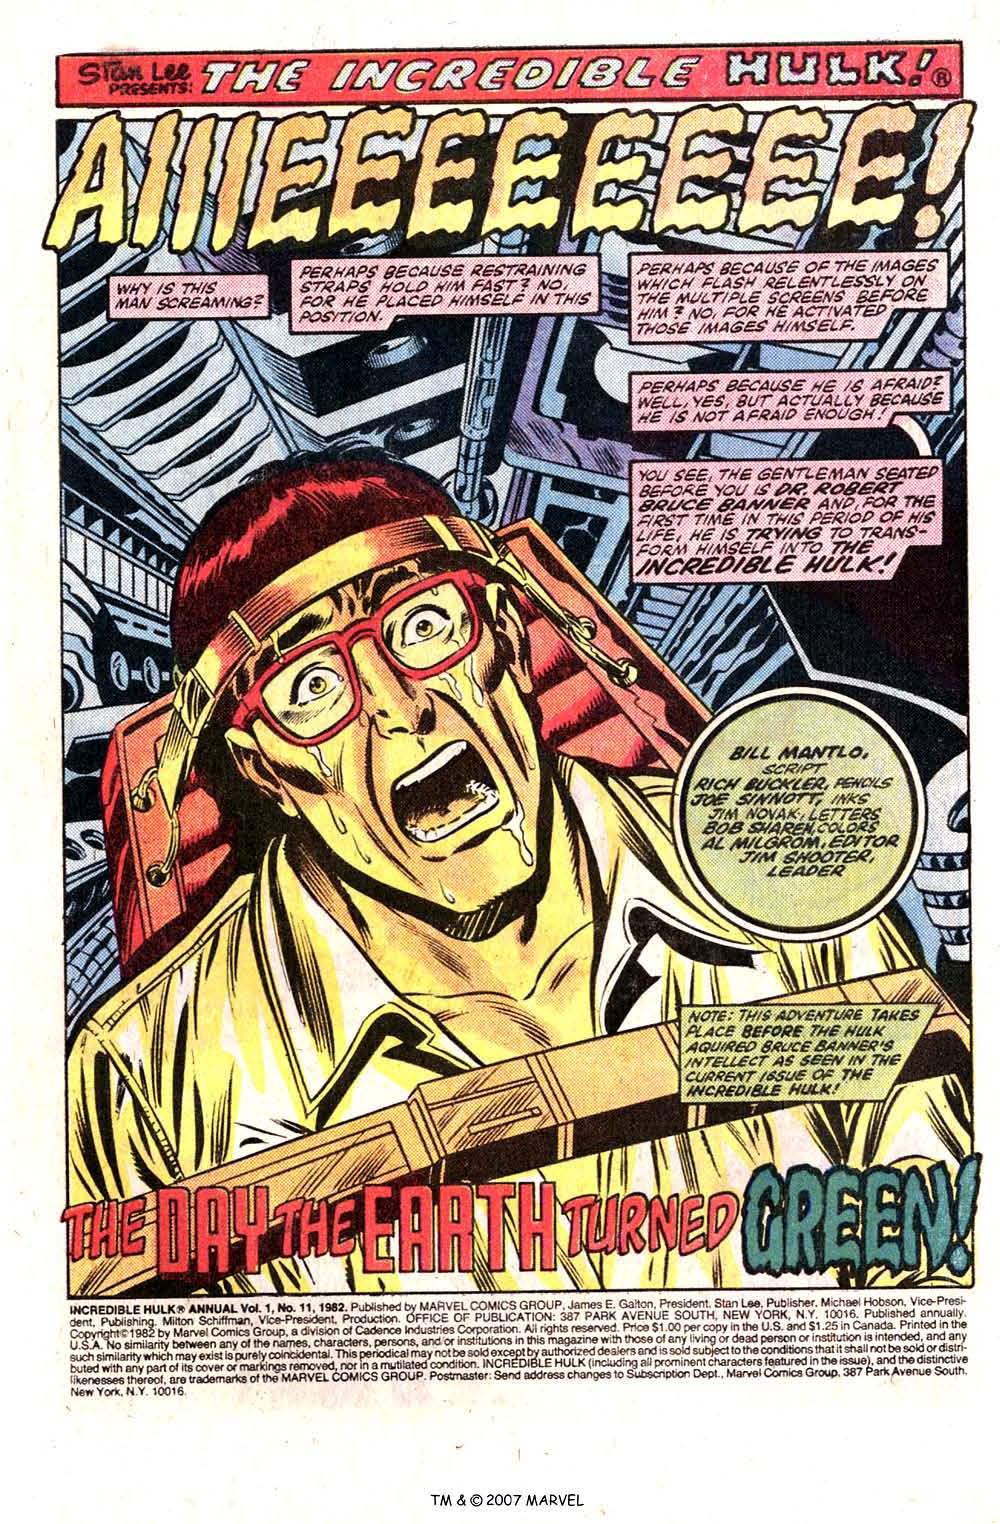 Comic The Incredible Hulk Annual issue 11